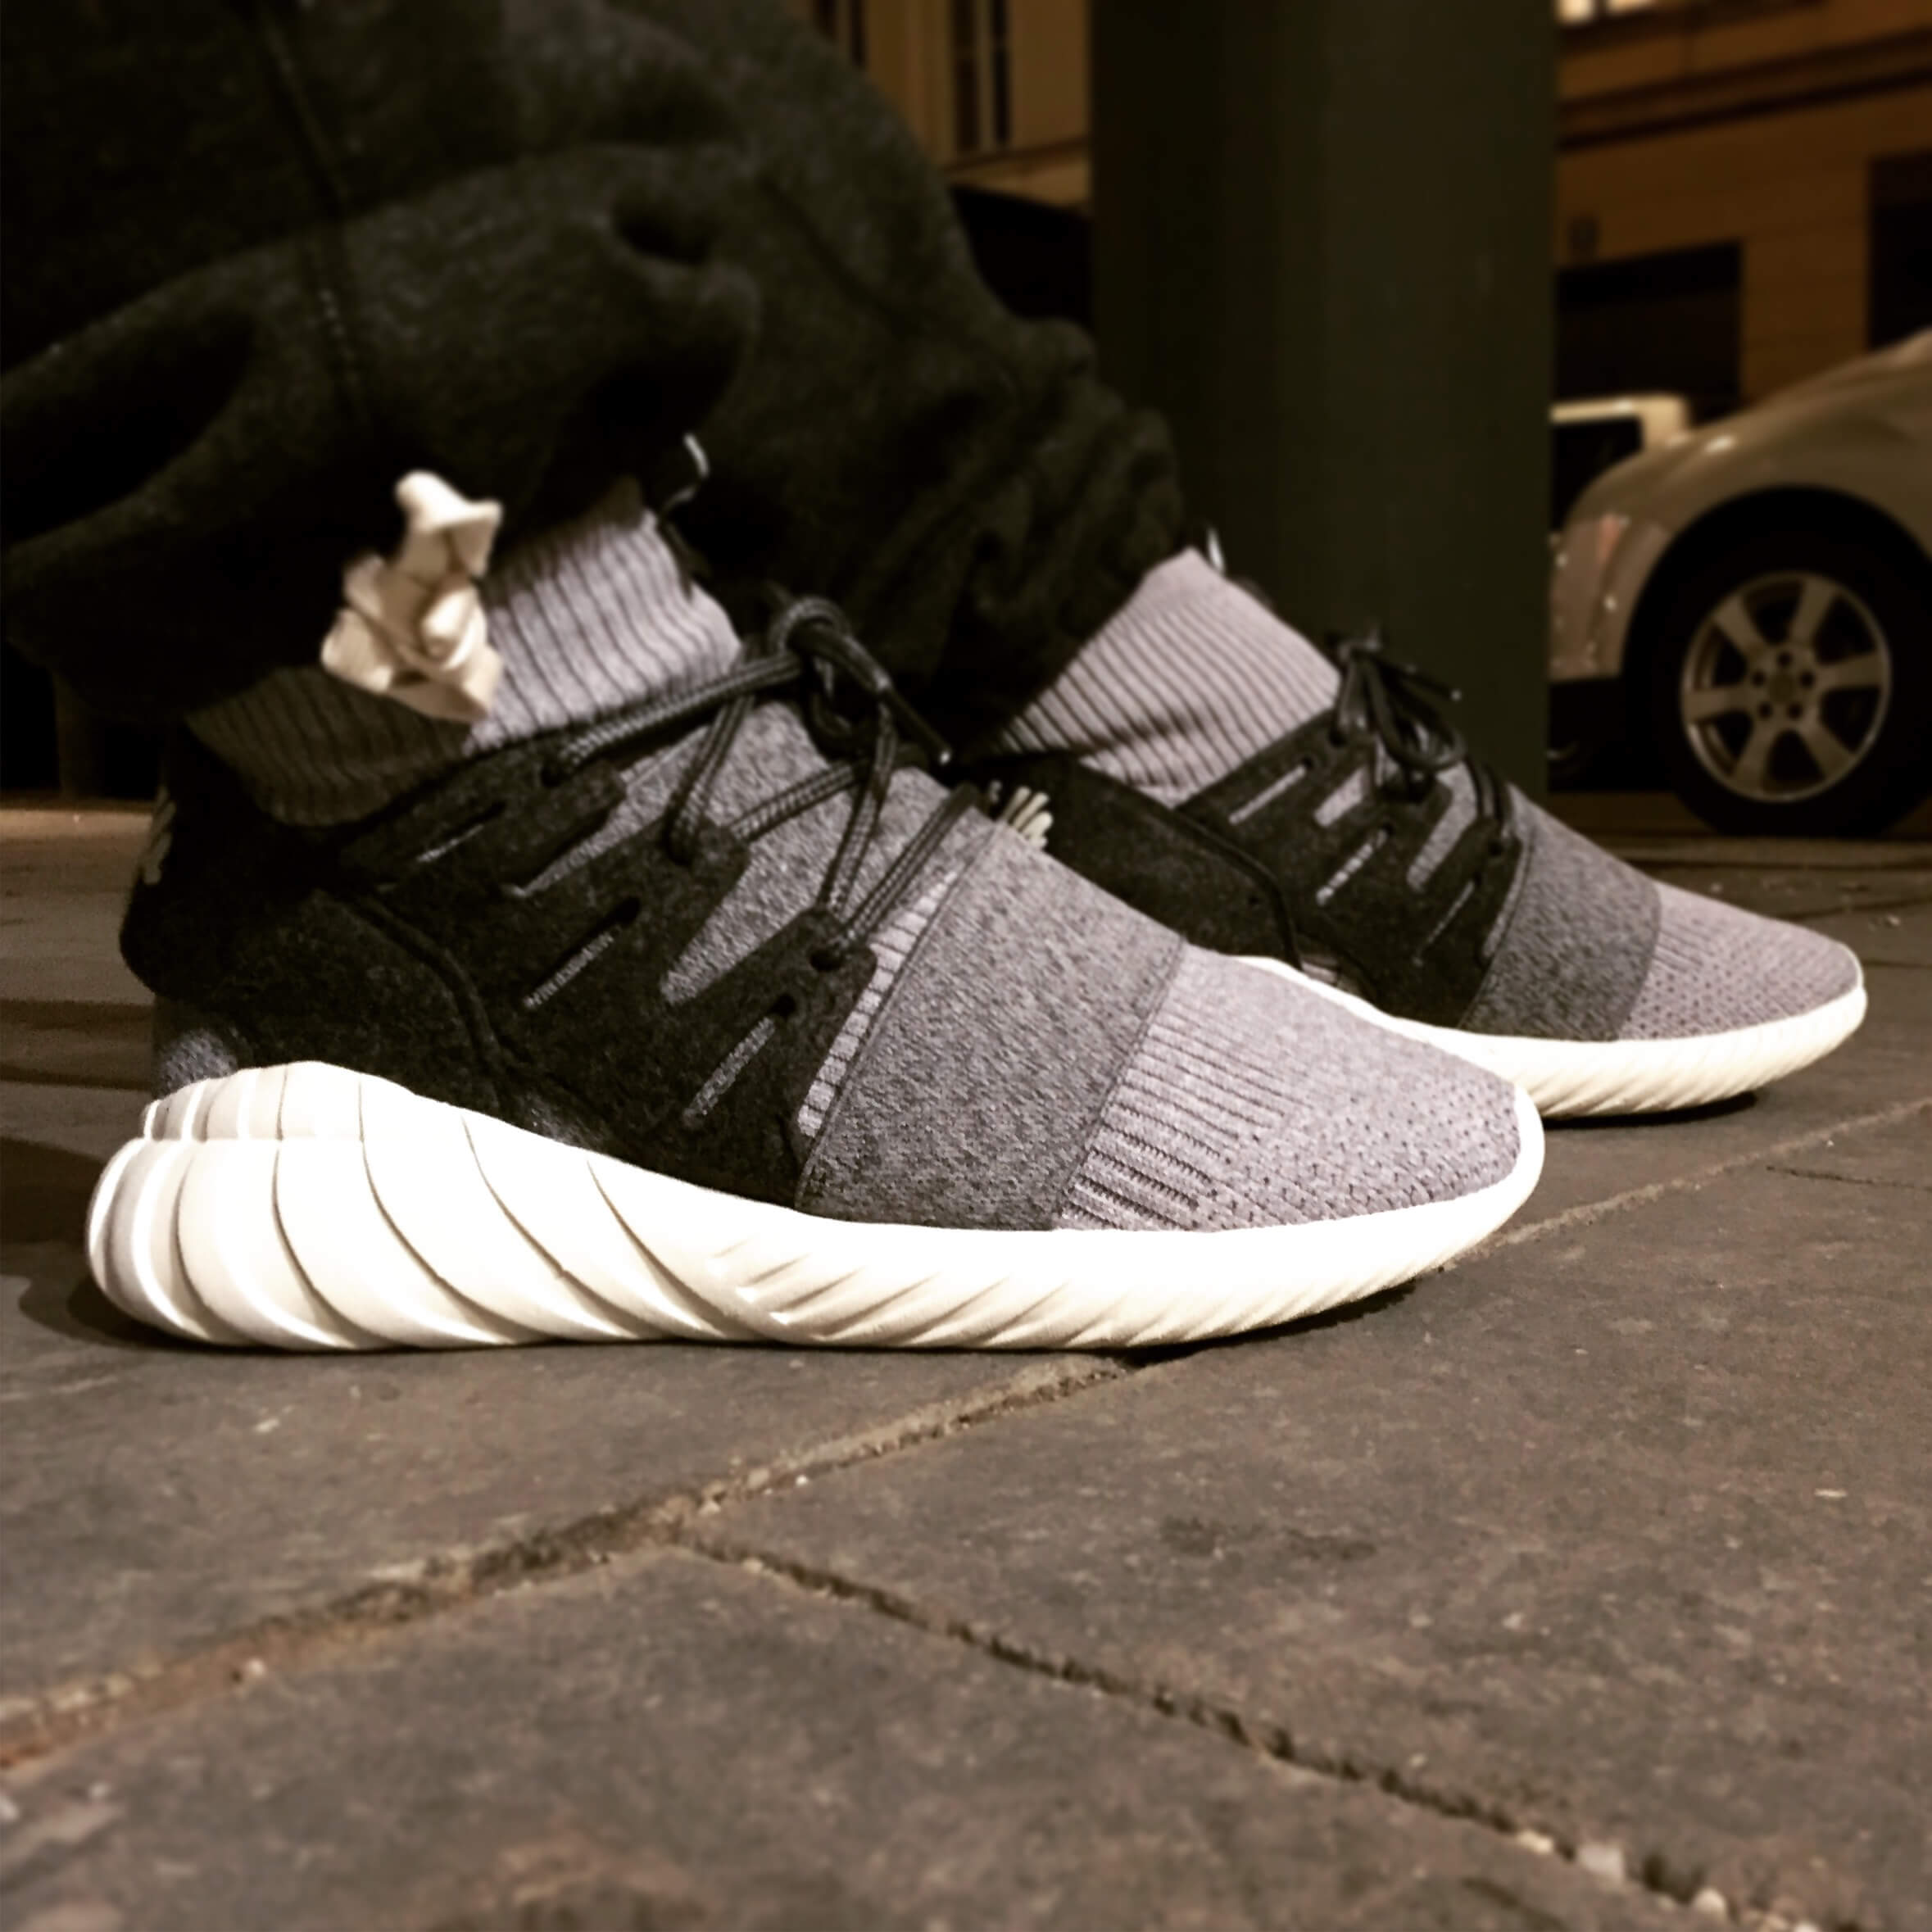 Adidas Women 's Originals Tubular Runner Fashion